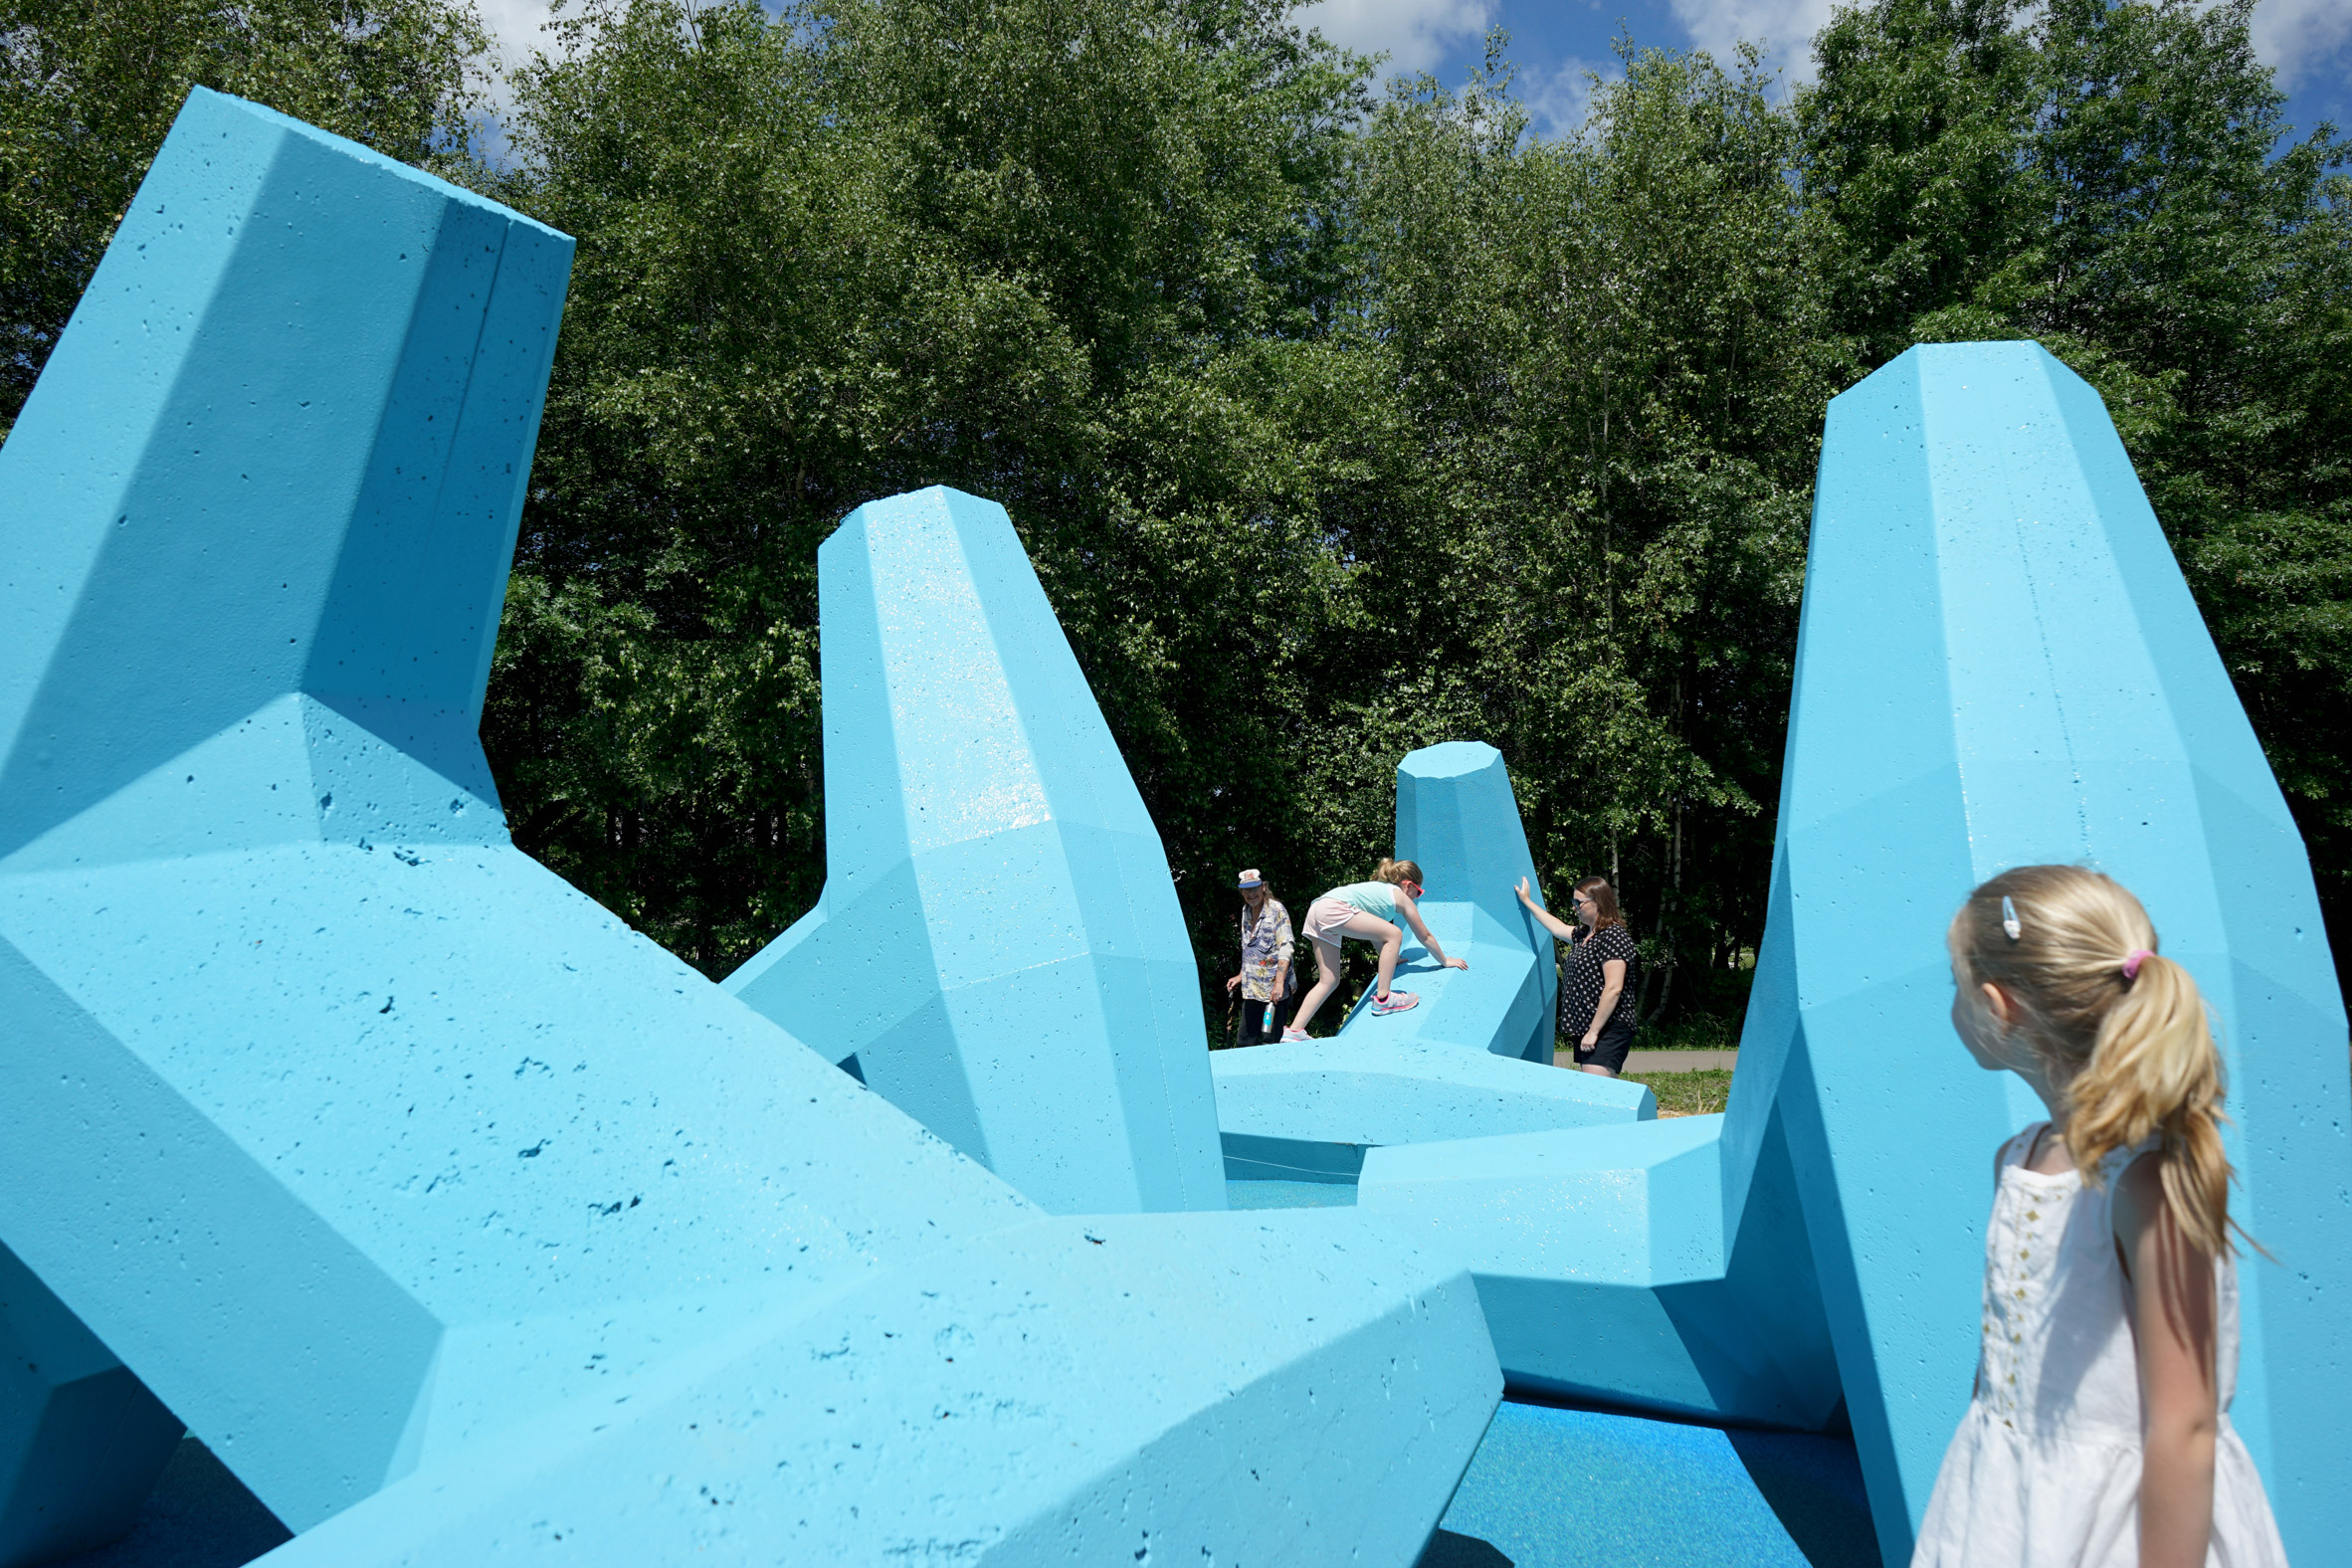 Breakwater is both a sculpture and a playground